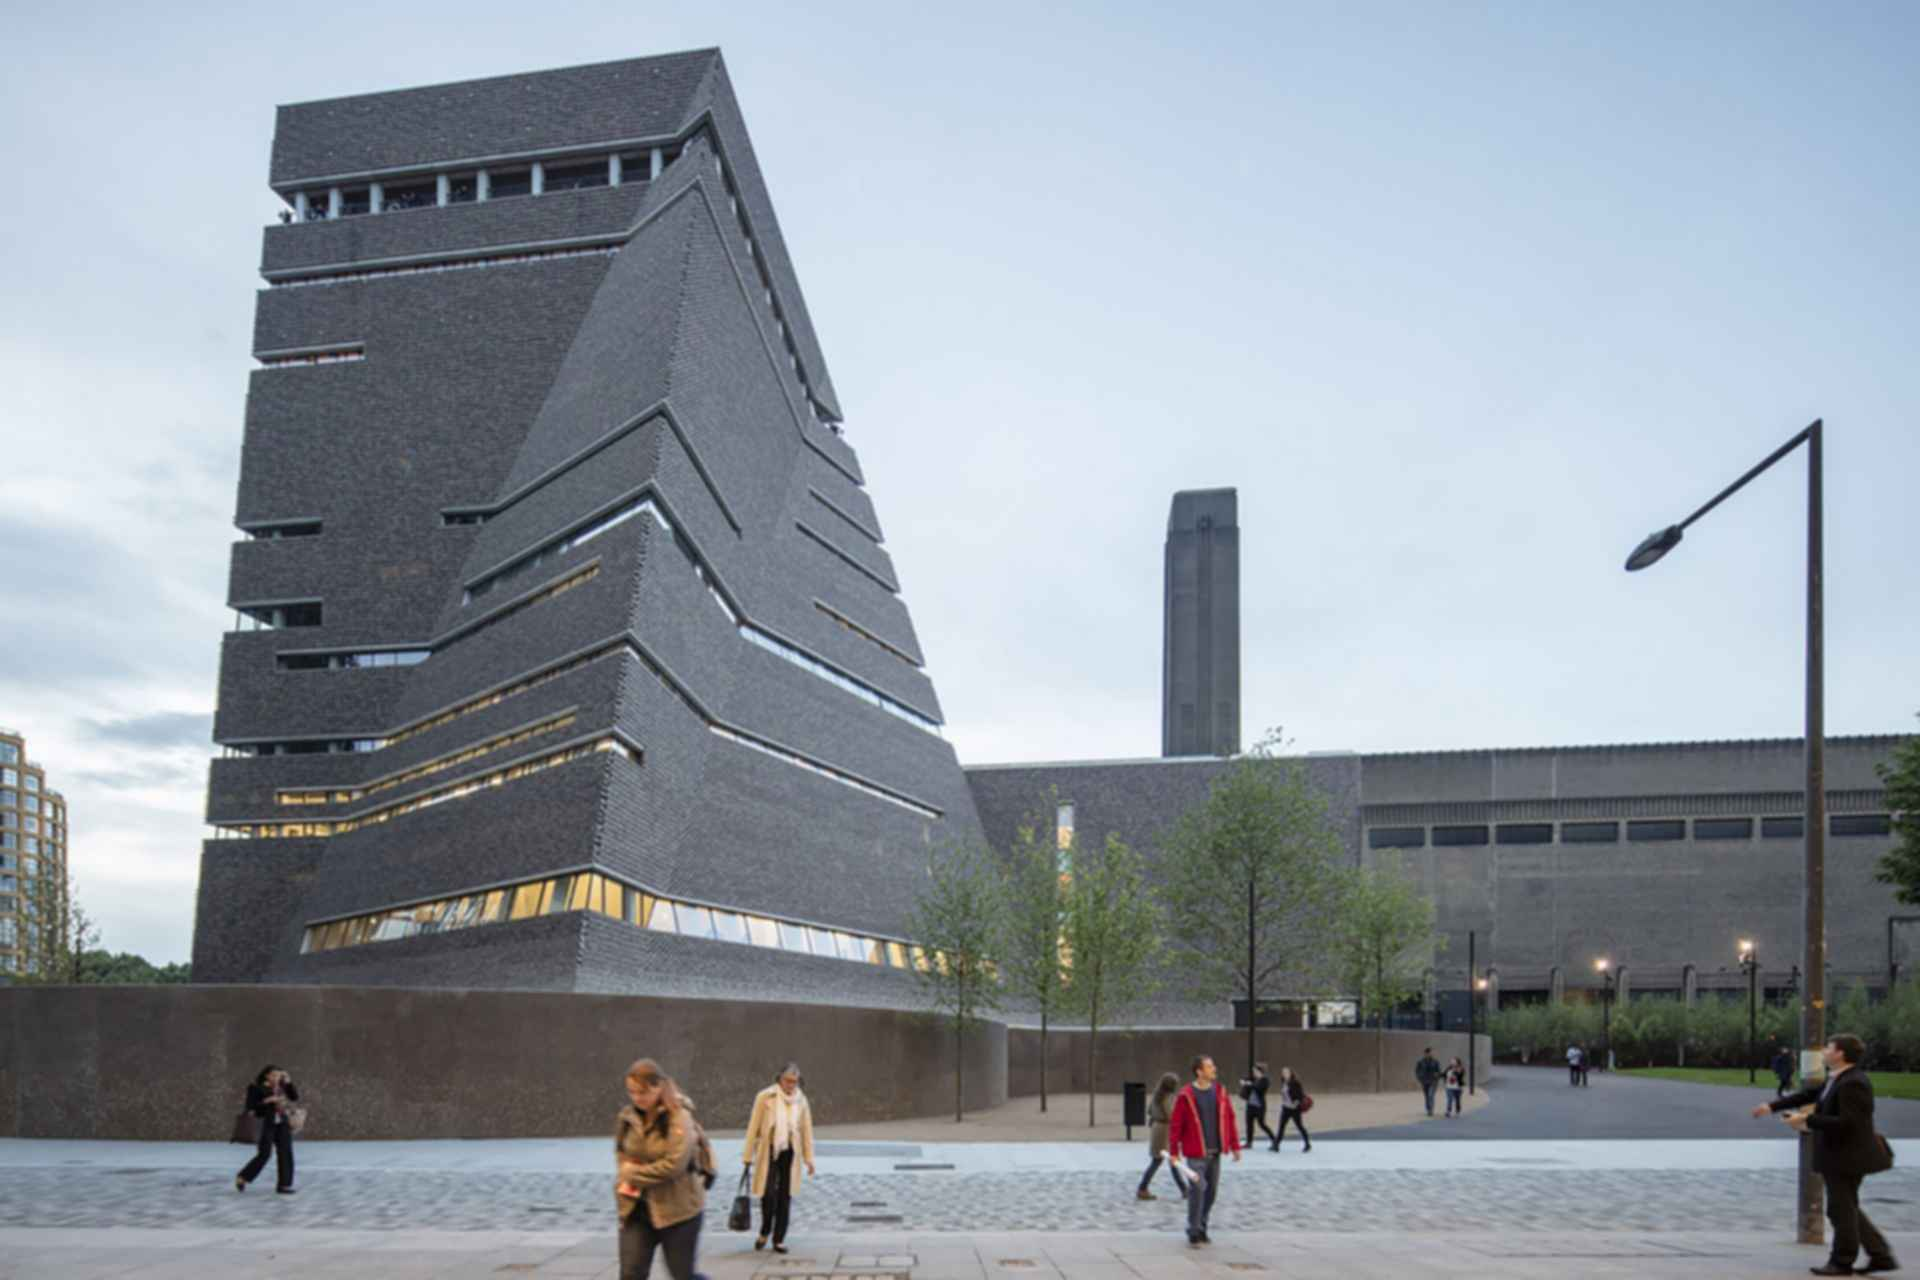 Tate Modern/Switch House extension - Exterior/Street View